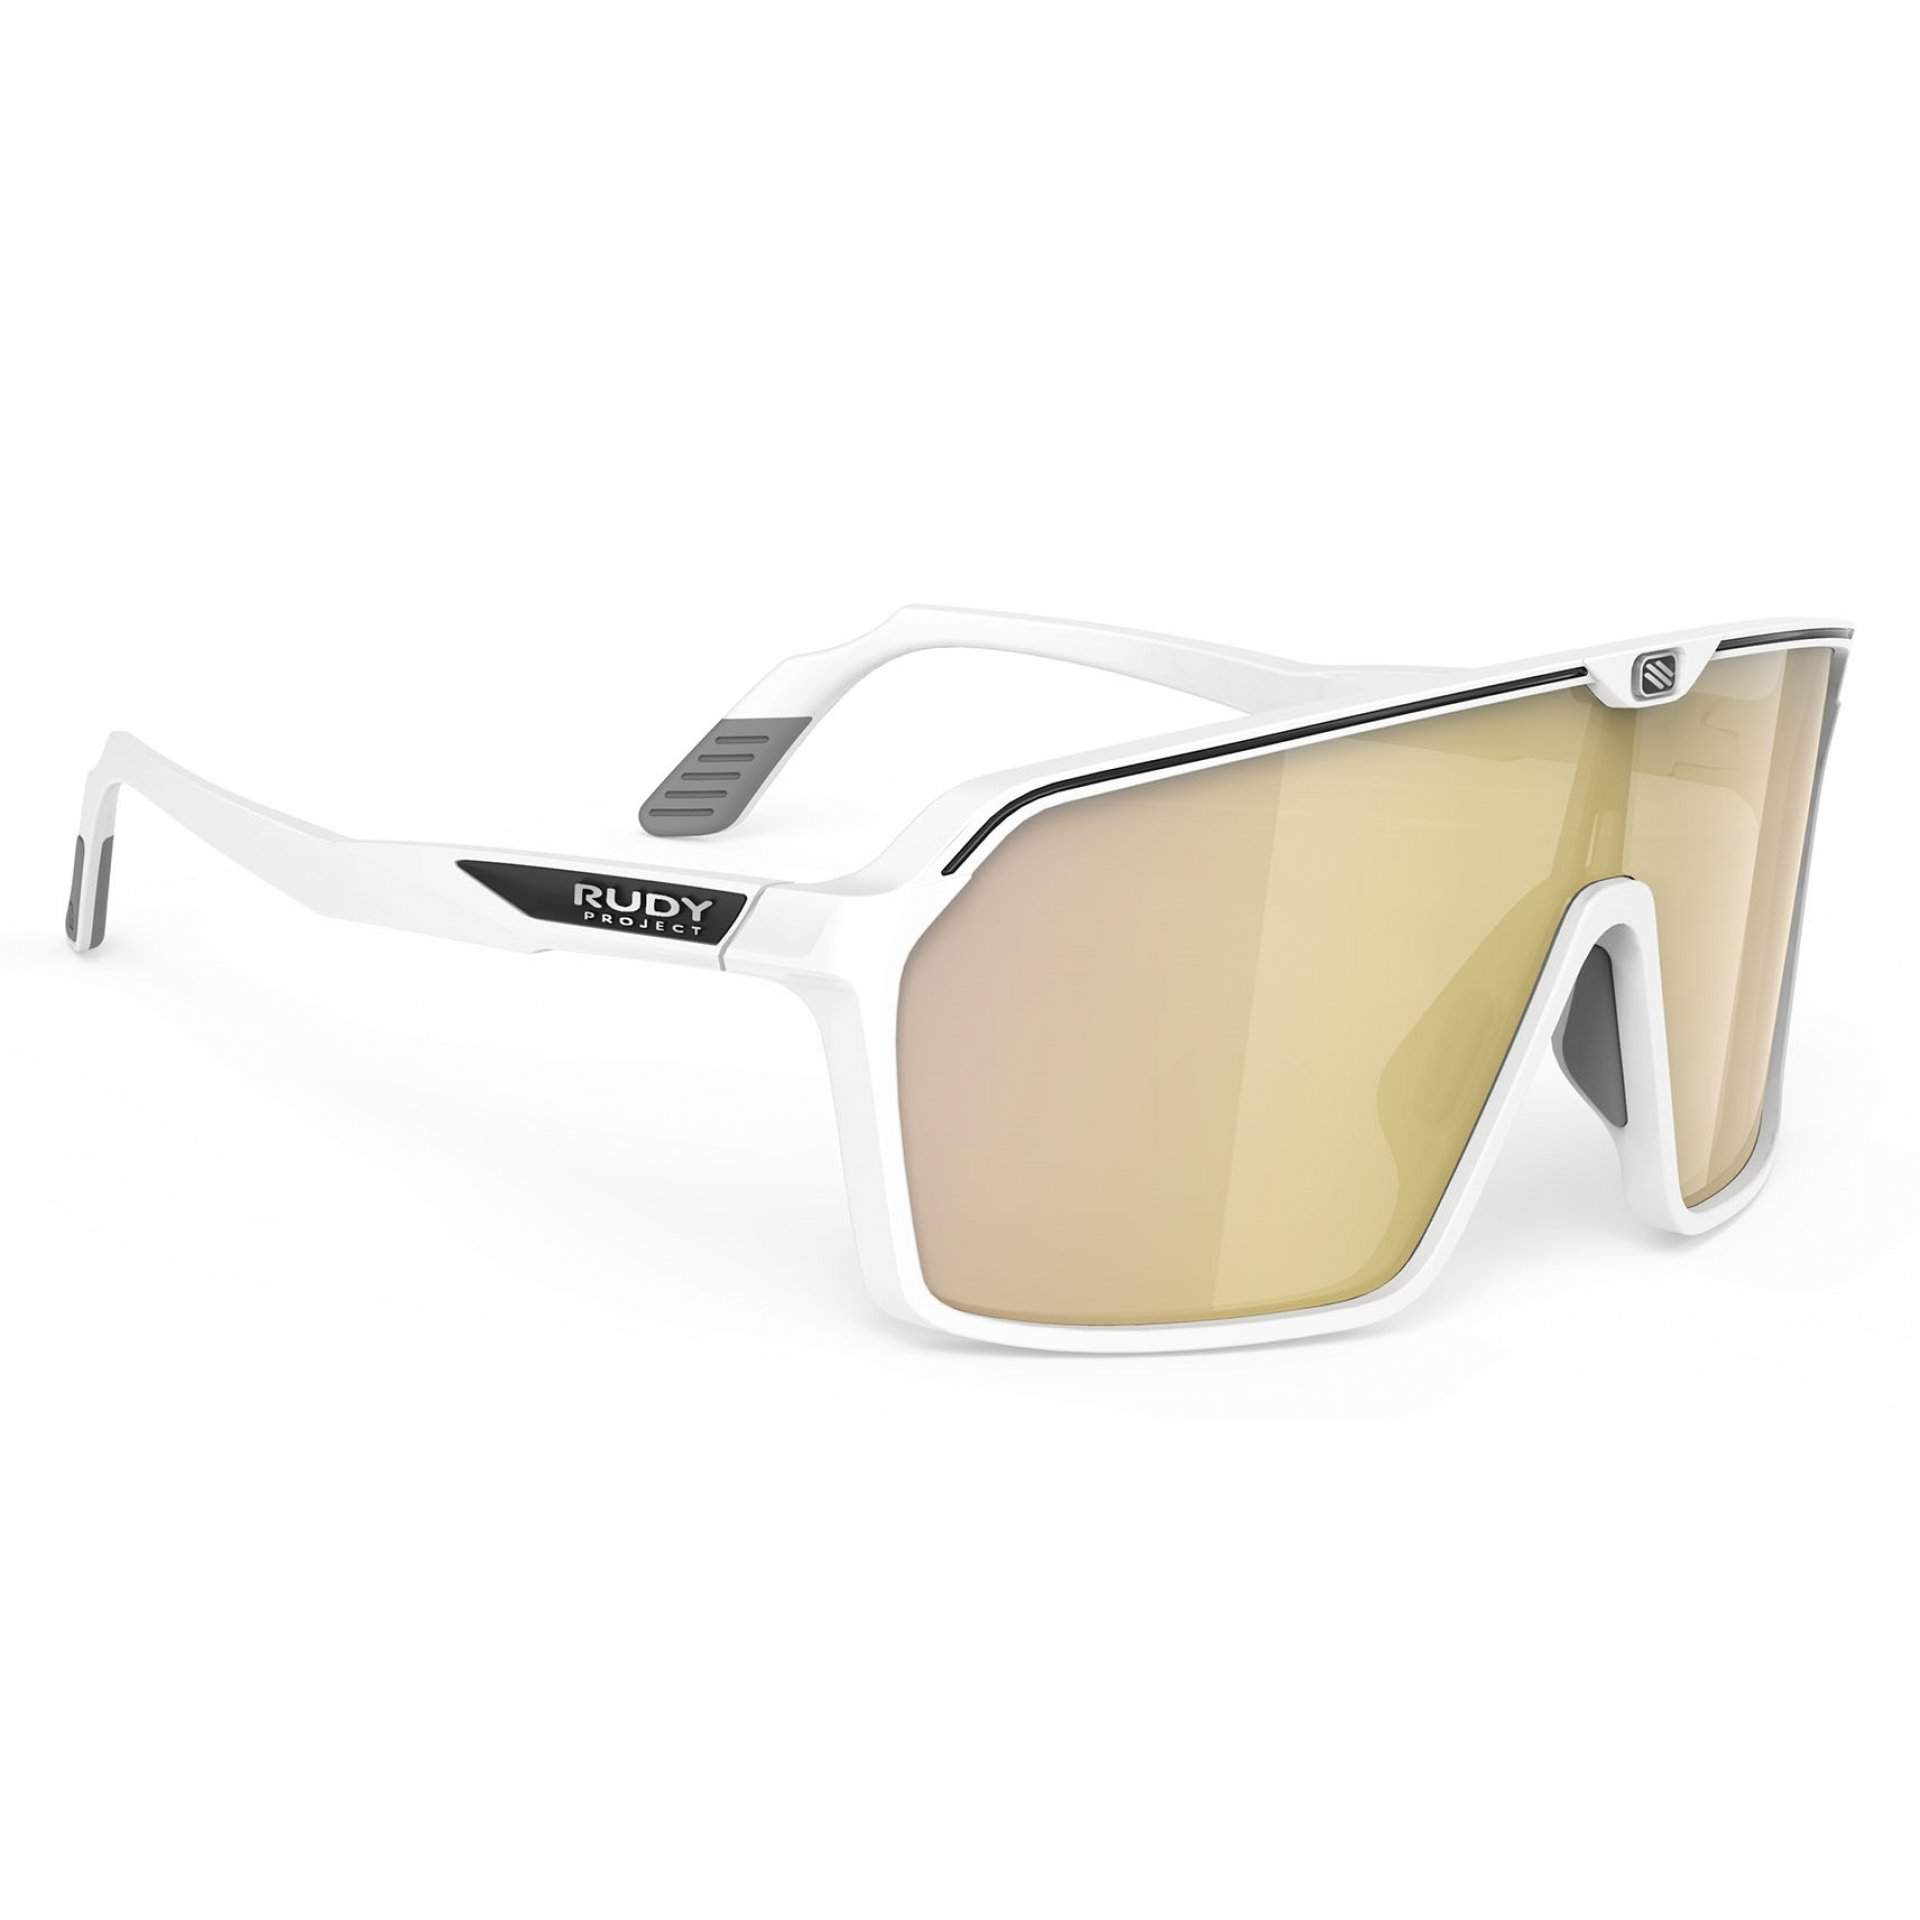 OKULARY RUDY PROJECT SPINSHIELD MULTILASER GOLD + WHITE MATTE SP7257580000